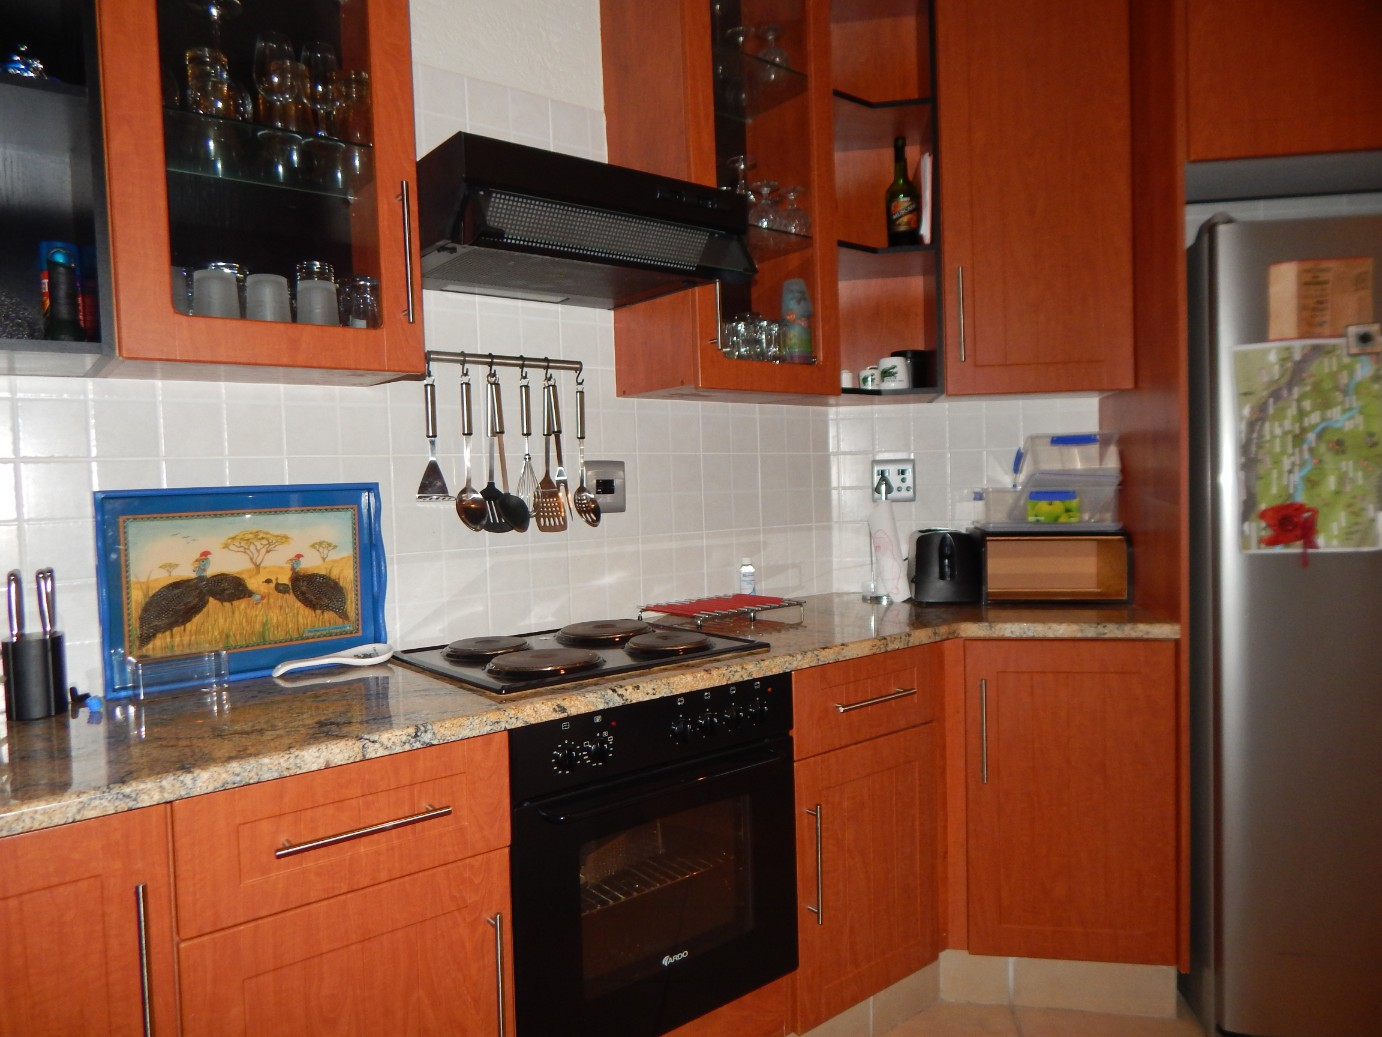 3 Bedroom Apartment for sale in Diaz Beach ENT0043723 : photo#15